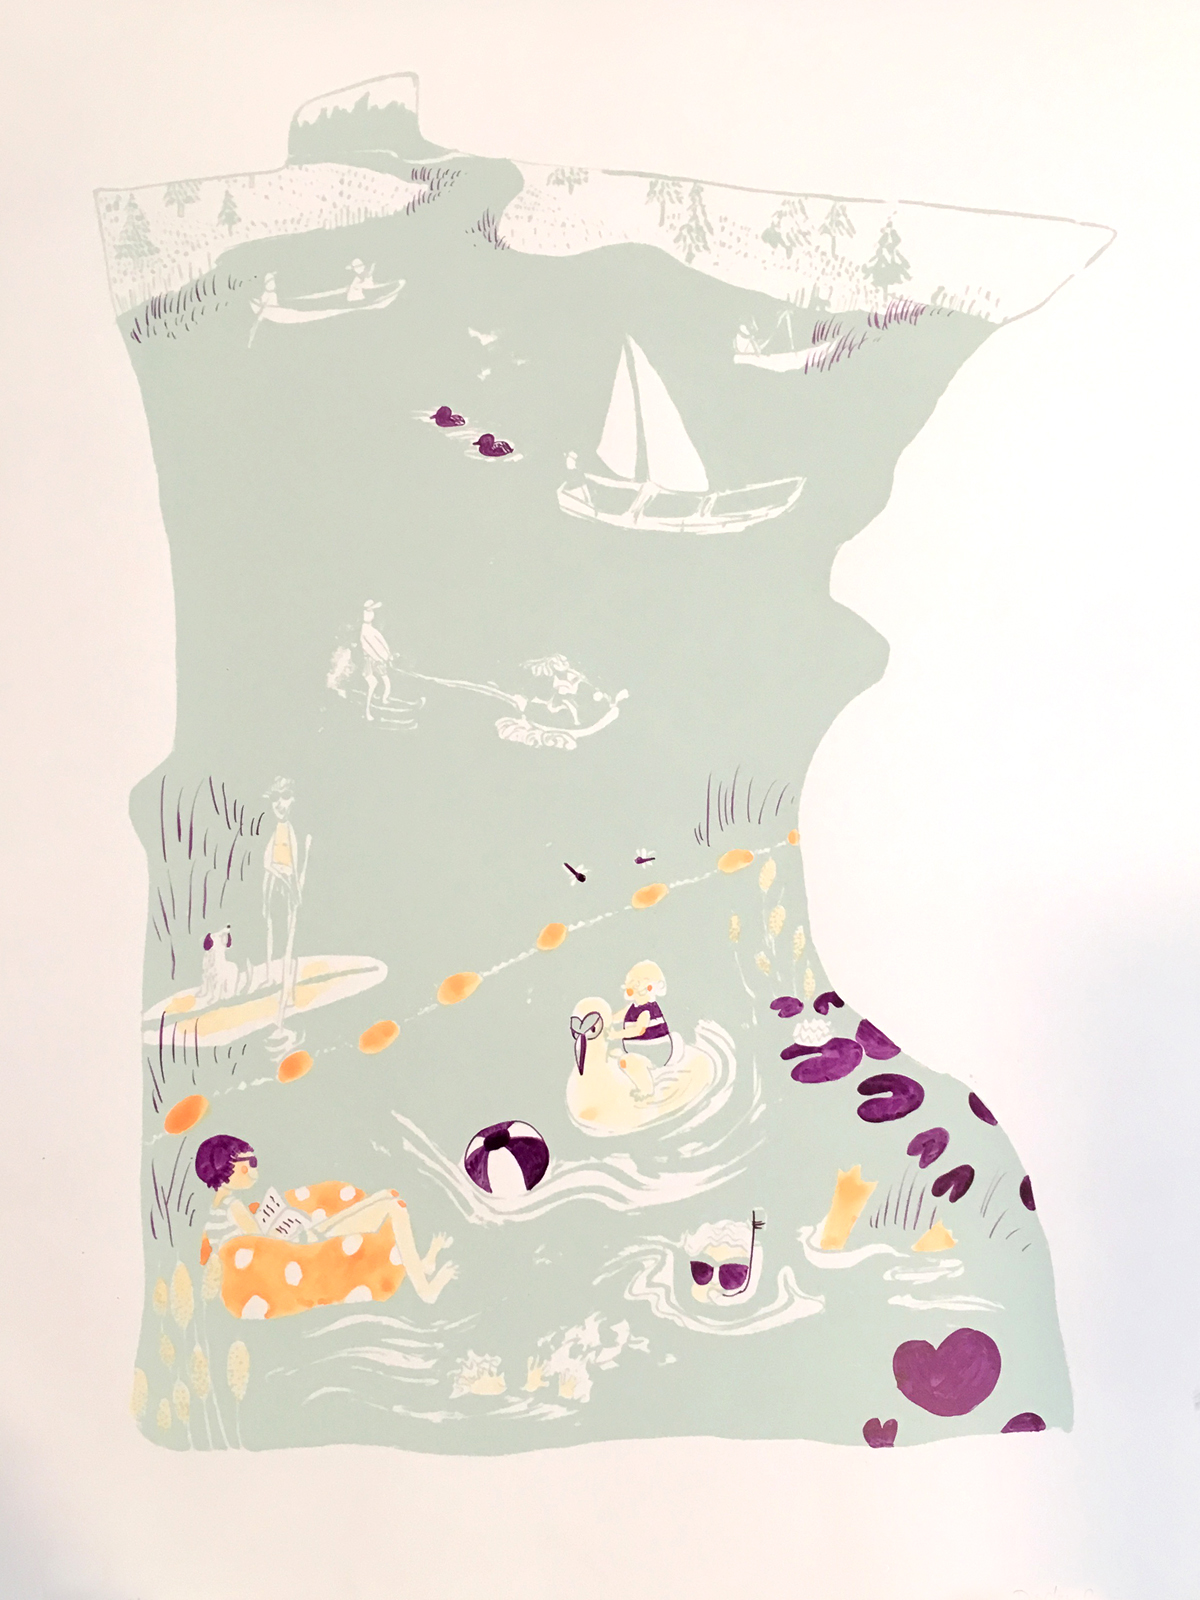 For the Love of Lakes poster by Britt Madson